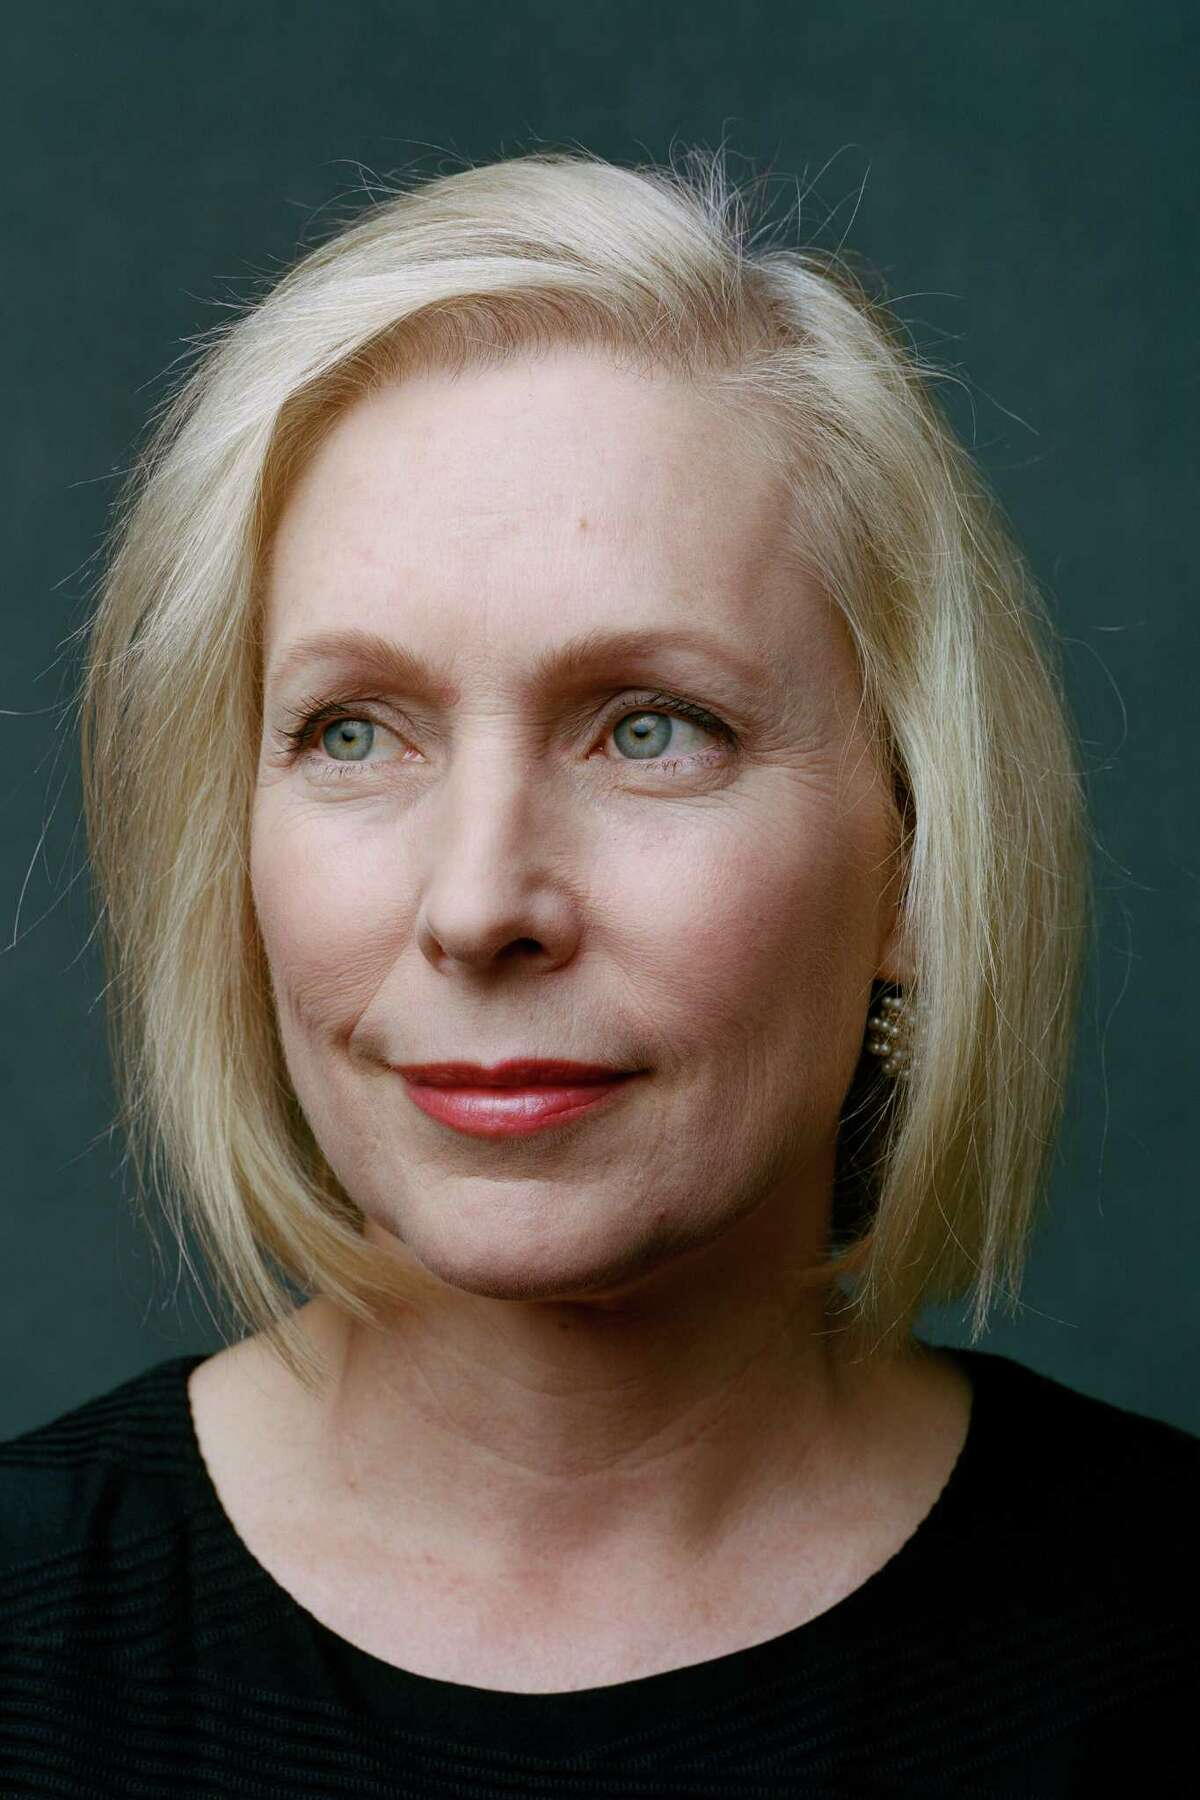 Sen. Kirsten Gillibrand (D-N.Y.) poses for a portrait in Washington on Jan. 7, 2019. Just over 100 years ago, the first woman was sworn into Congress. Now a record 131 women are serving in the Legislature. (Celeste Sloman/The New York Times)